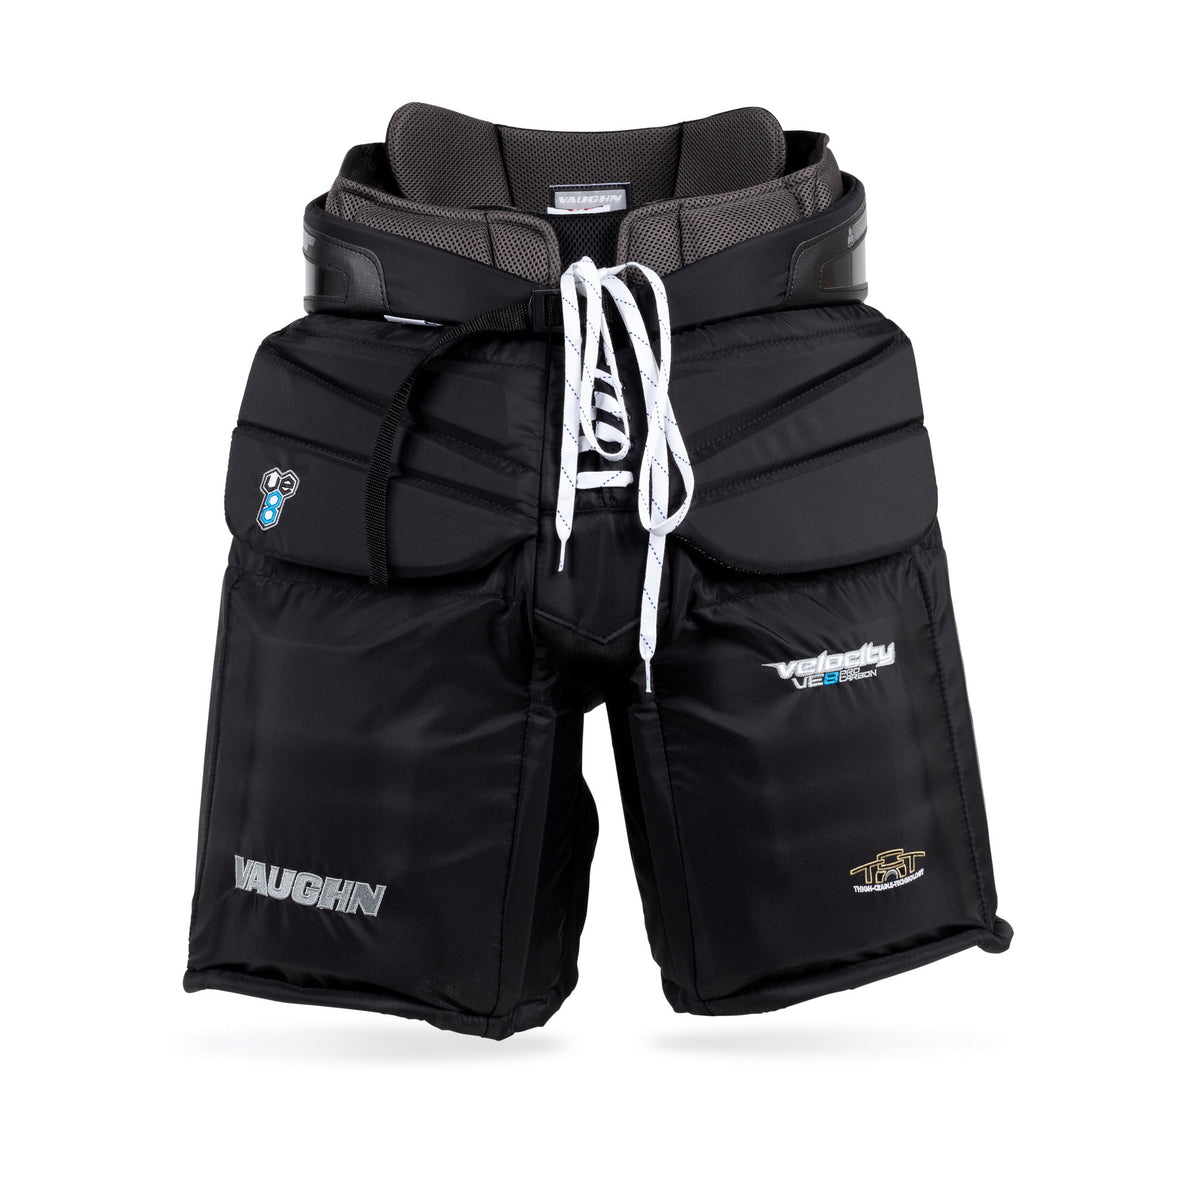 Vaughn Velocity VE8 Pro Carbon Senior Goalie Pants